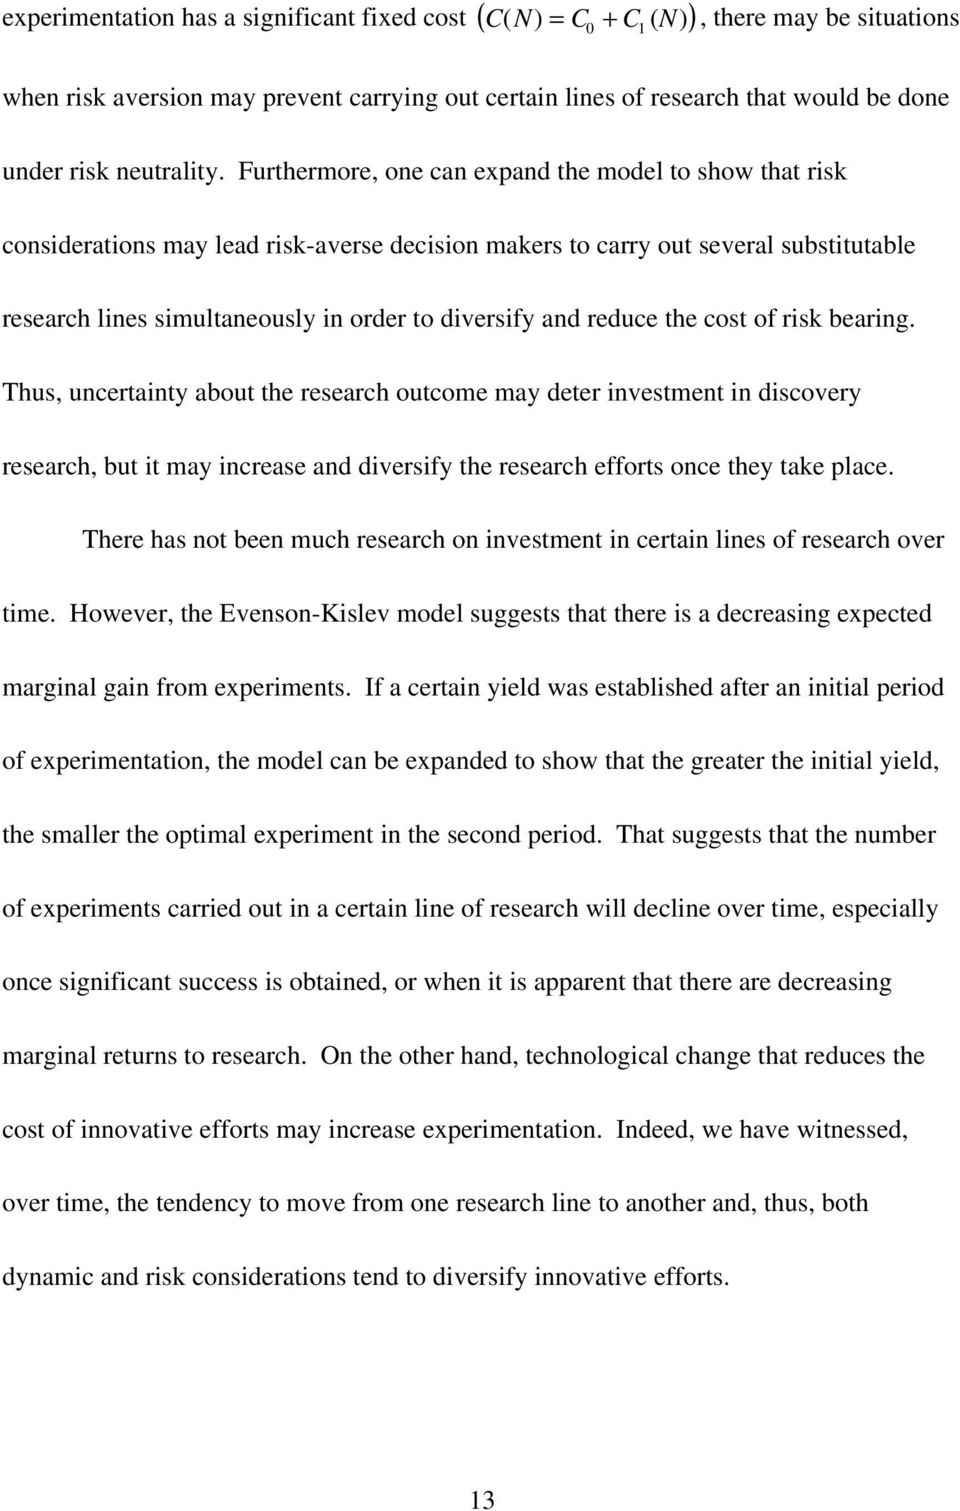 Furthermore, one can expand the model to show that risk considerations may lead risk-averse decision makers to carry out several substitutable research lines simultaneously in order to diversify and